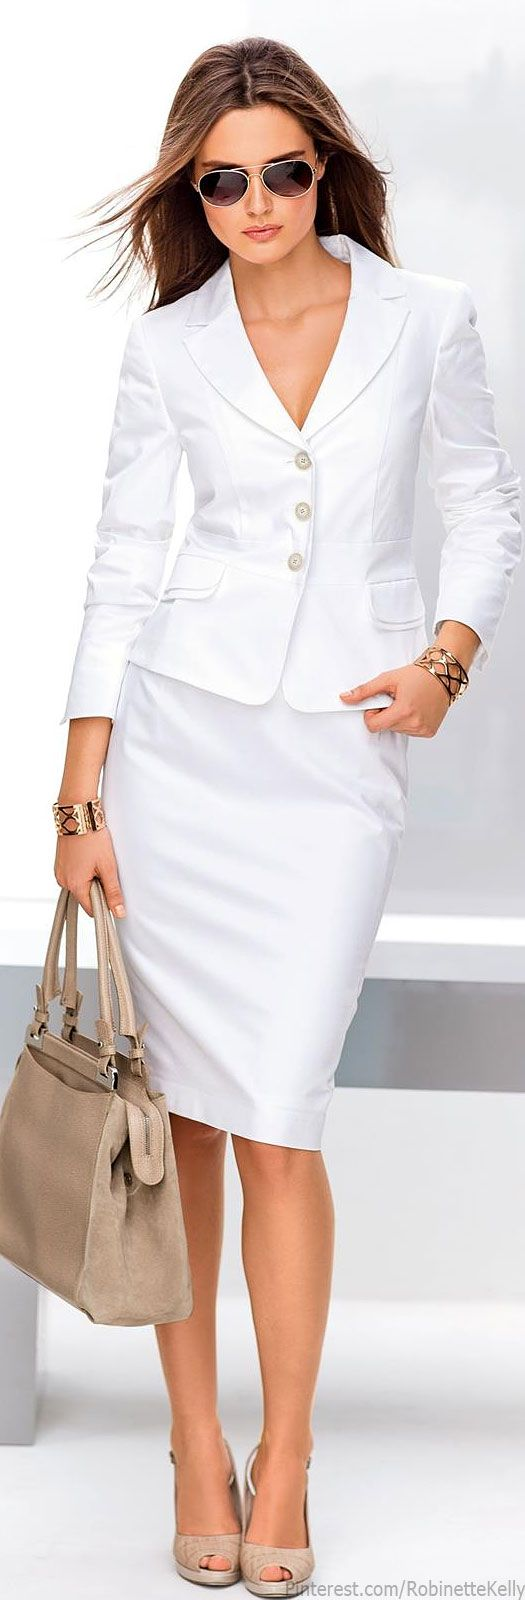 660 best Corporate wear, women images on Pinterest | Clothing, My ...